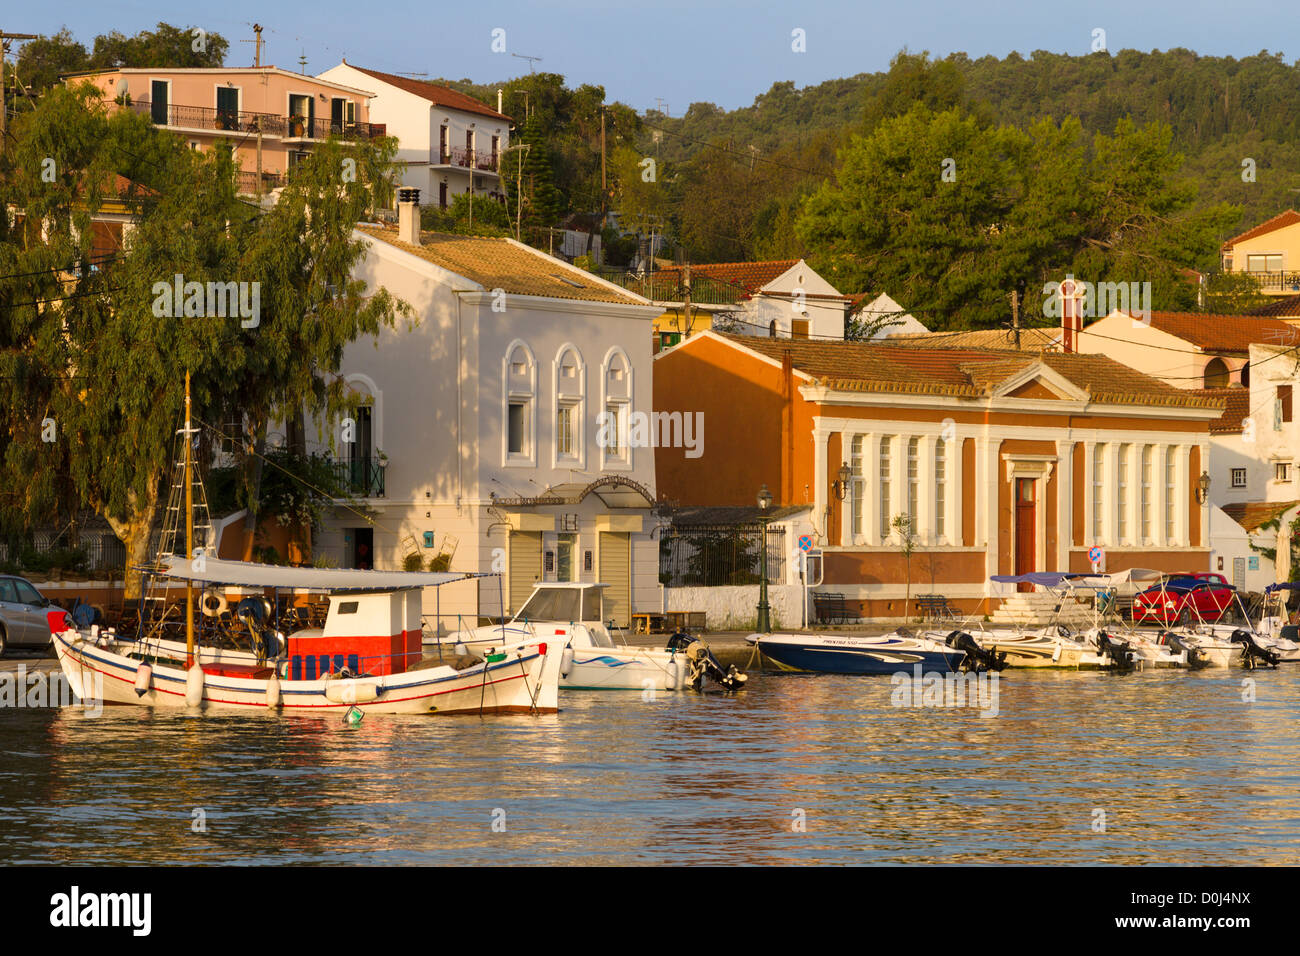 Fishing boat moored in front of classical buildings at Gaios harbour Paxos, Greece - Stock Image